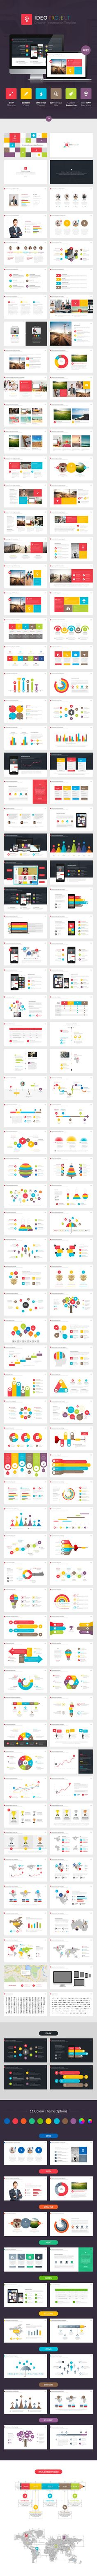 Ideo Powerpoint Presentation Template PowerPoint Template / Theme / Presentation…